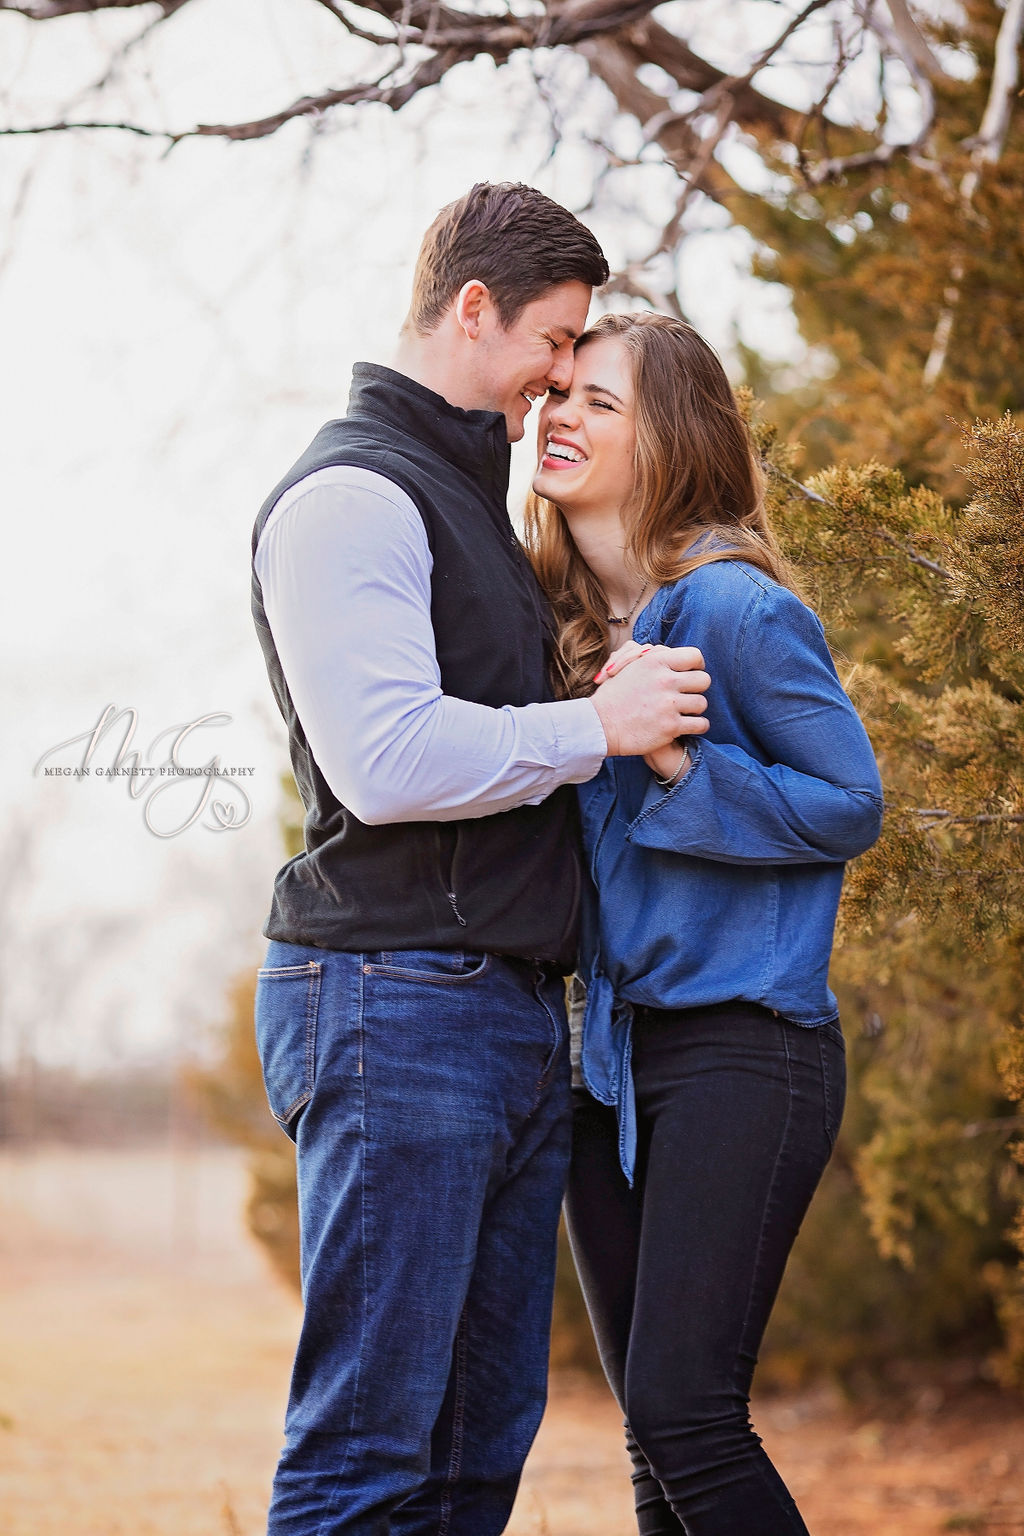 Cute Couple Laughing engagement